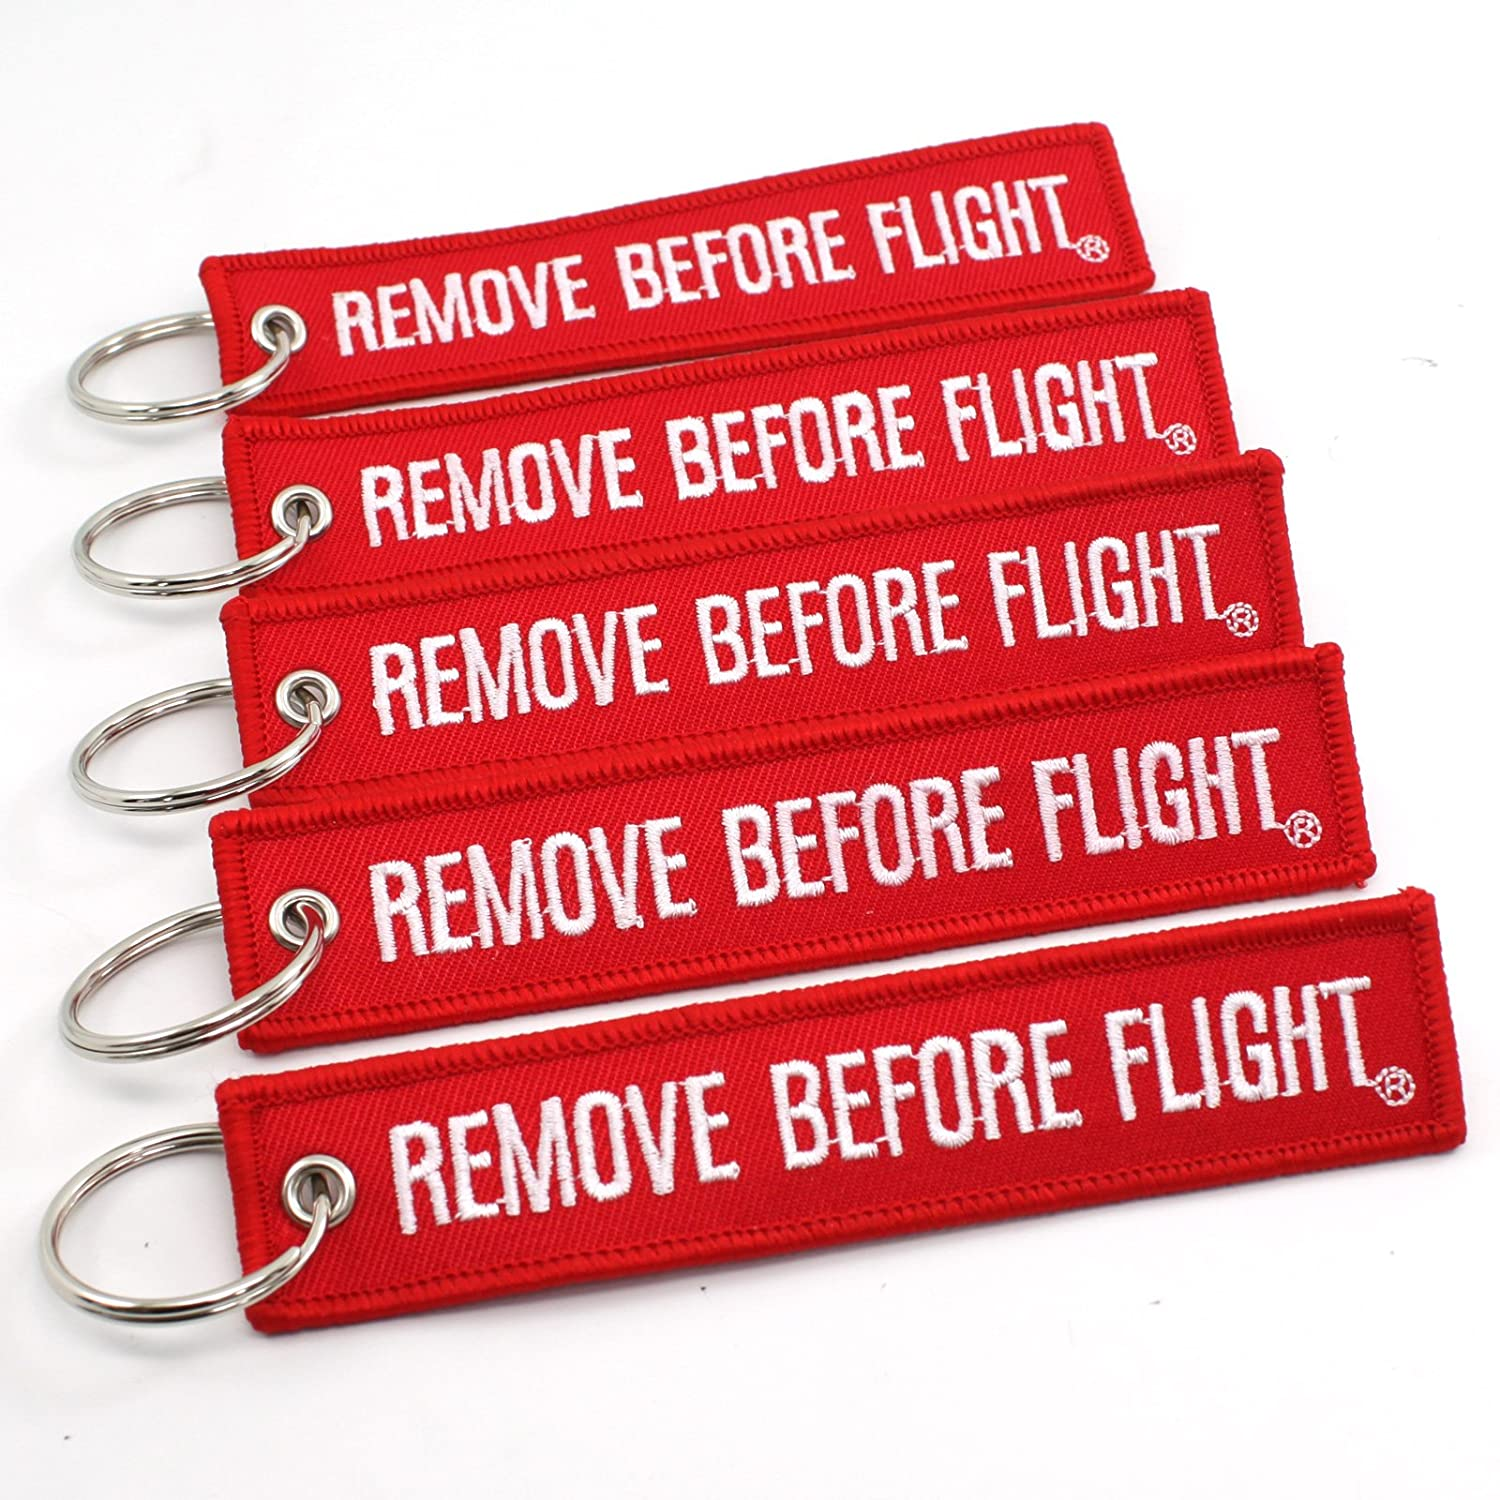 Remove Before Flight Key Chain - 5 Pack Red with White Letters - Rotary13B1: Automotive